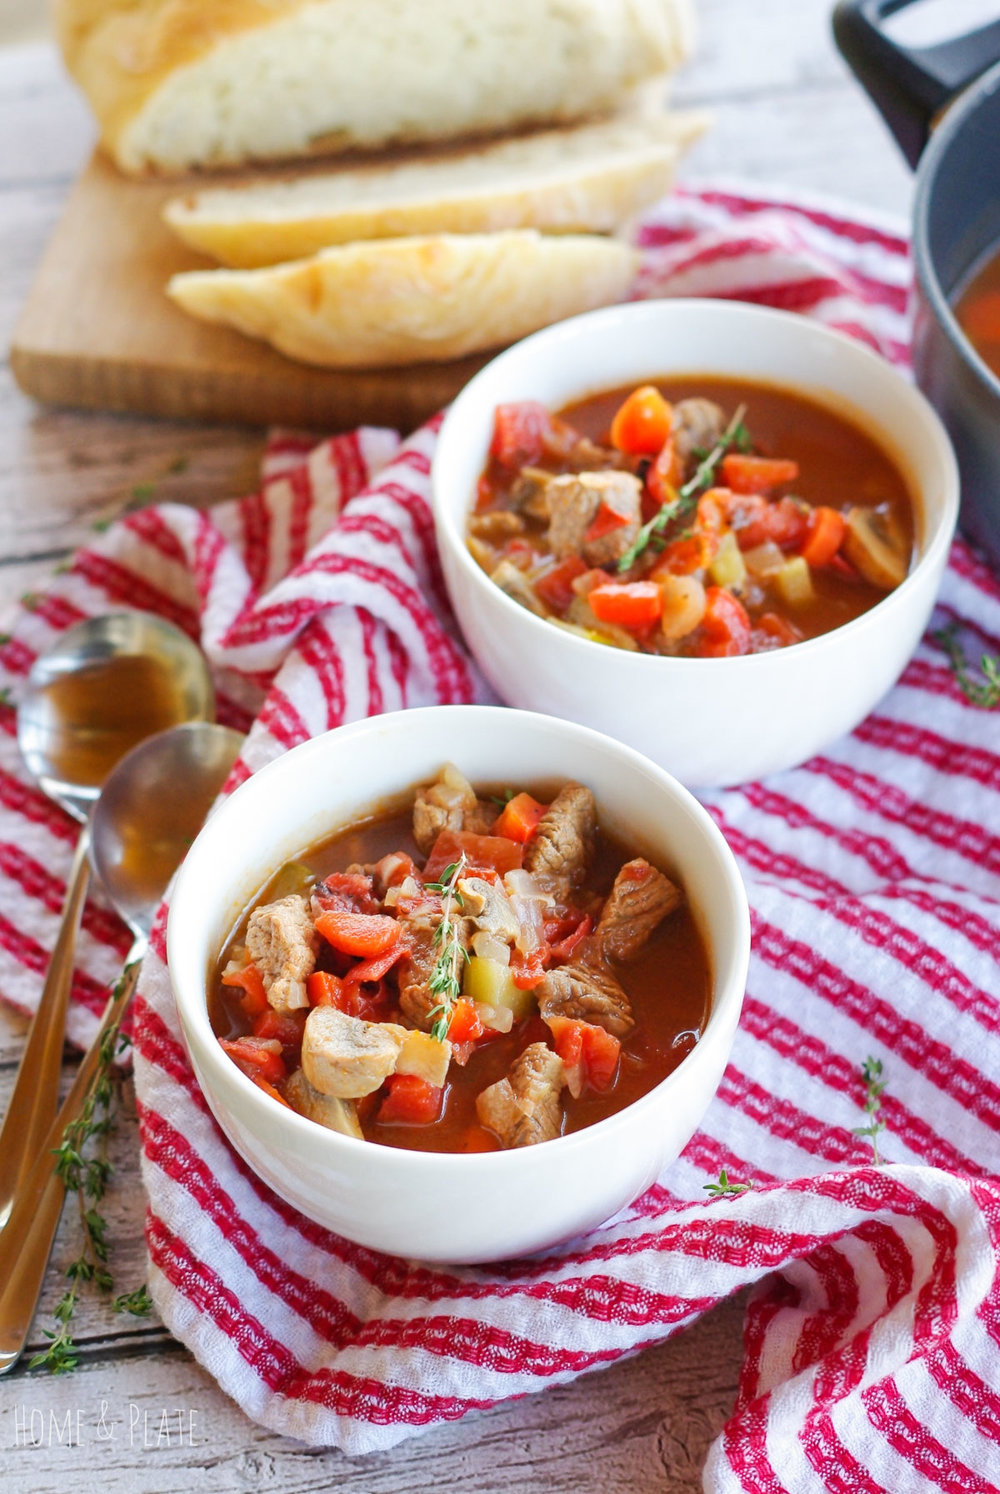 Hearty Winter Beef Stew | www.homeandplate.com | This healthy winter stew if chock full of tender beef and vegetables and can be made on the stovetop or crockpot.